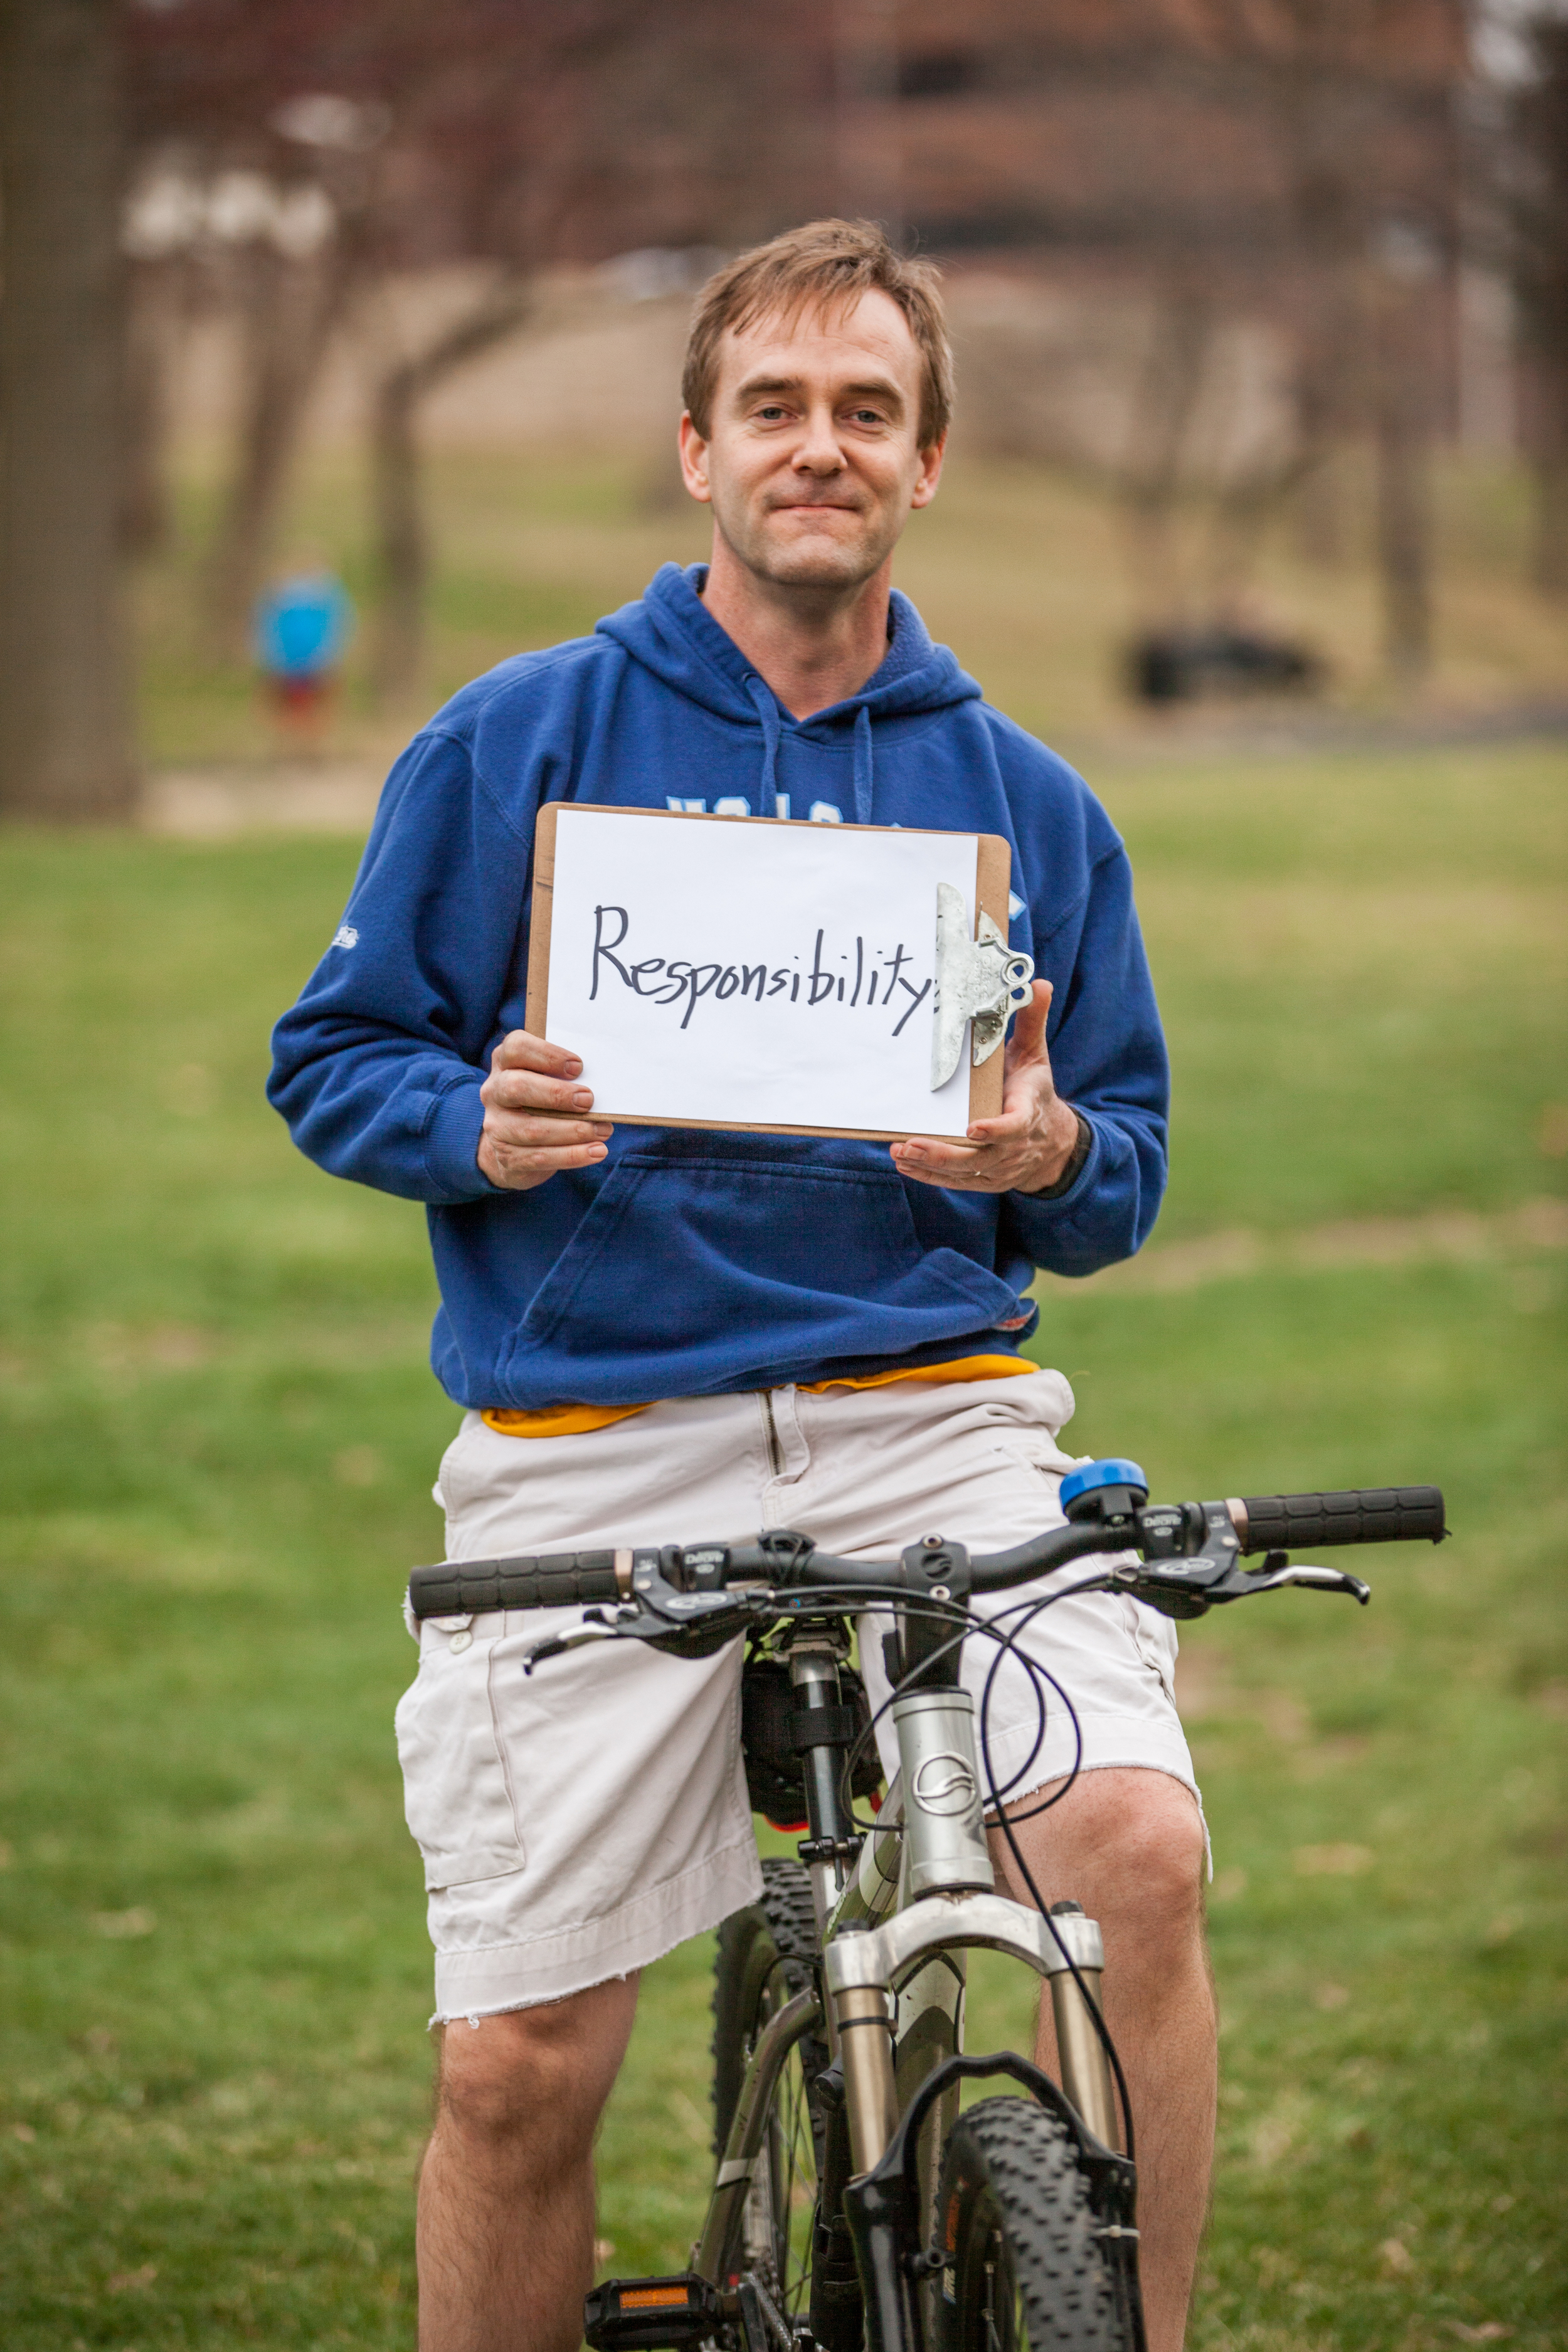 Man on a bicycle holding a sign that says responsibility.